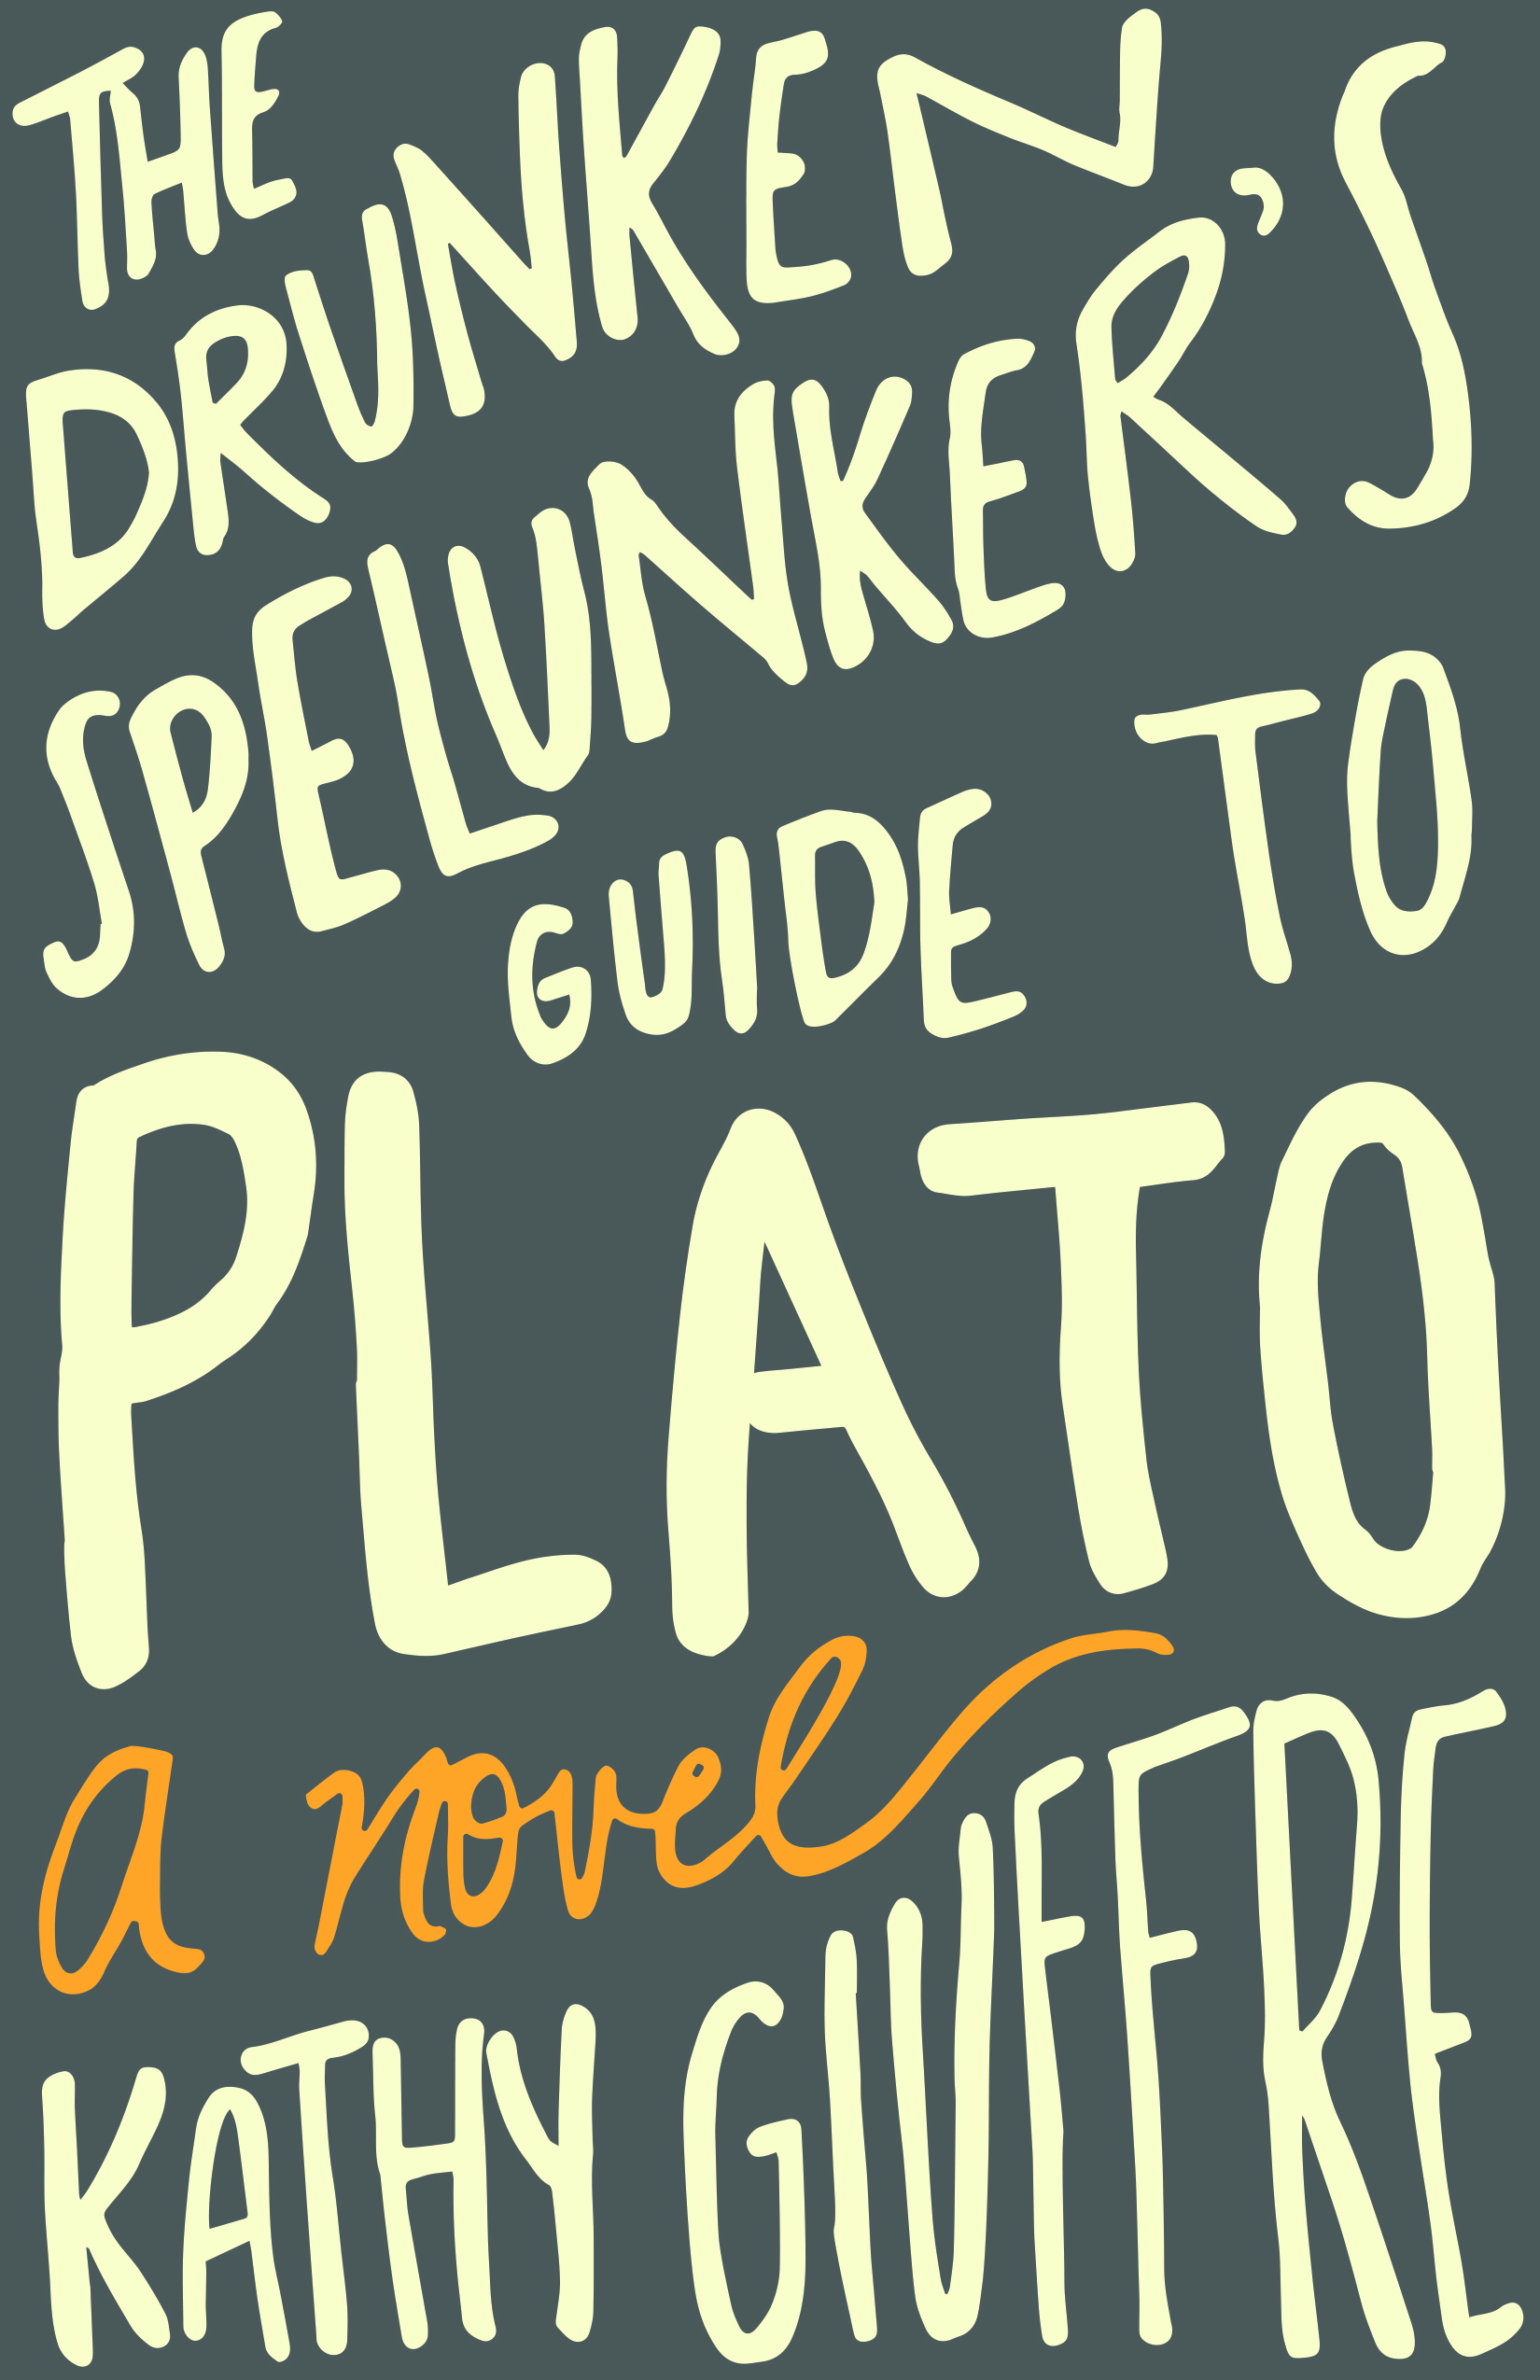 The Drunken Spelunkers Guide to Plato  by  Kathy Giuffre